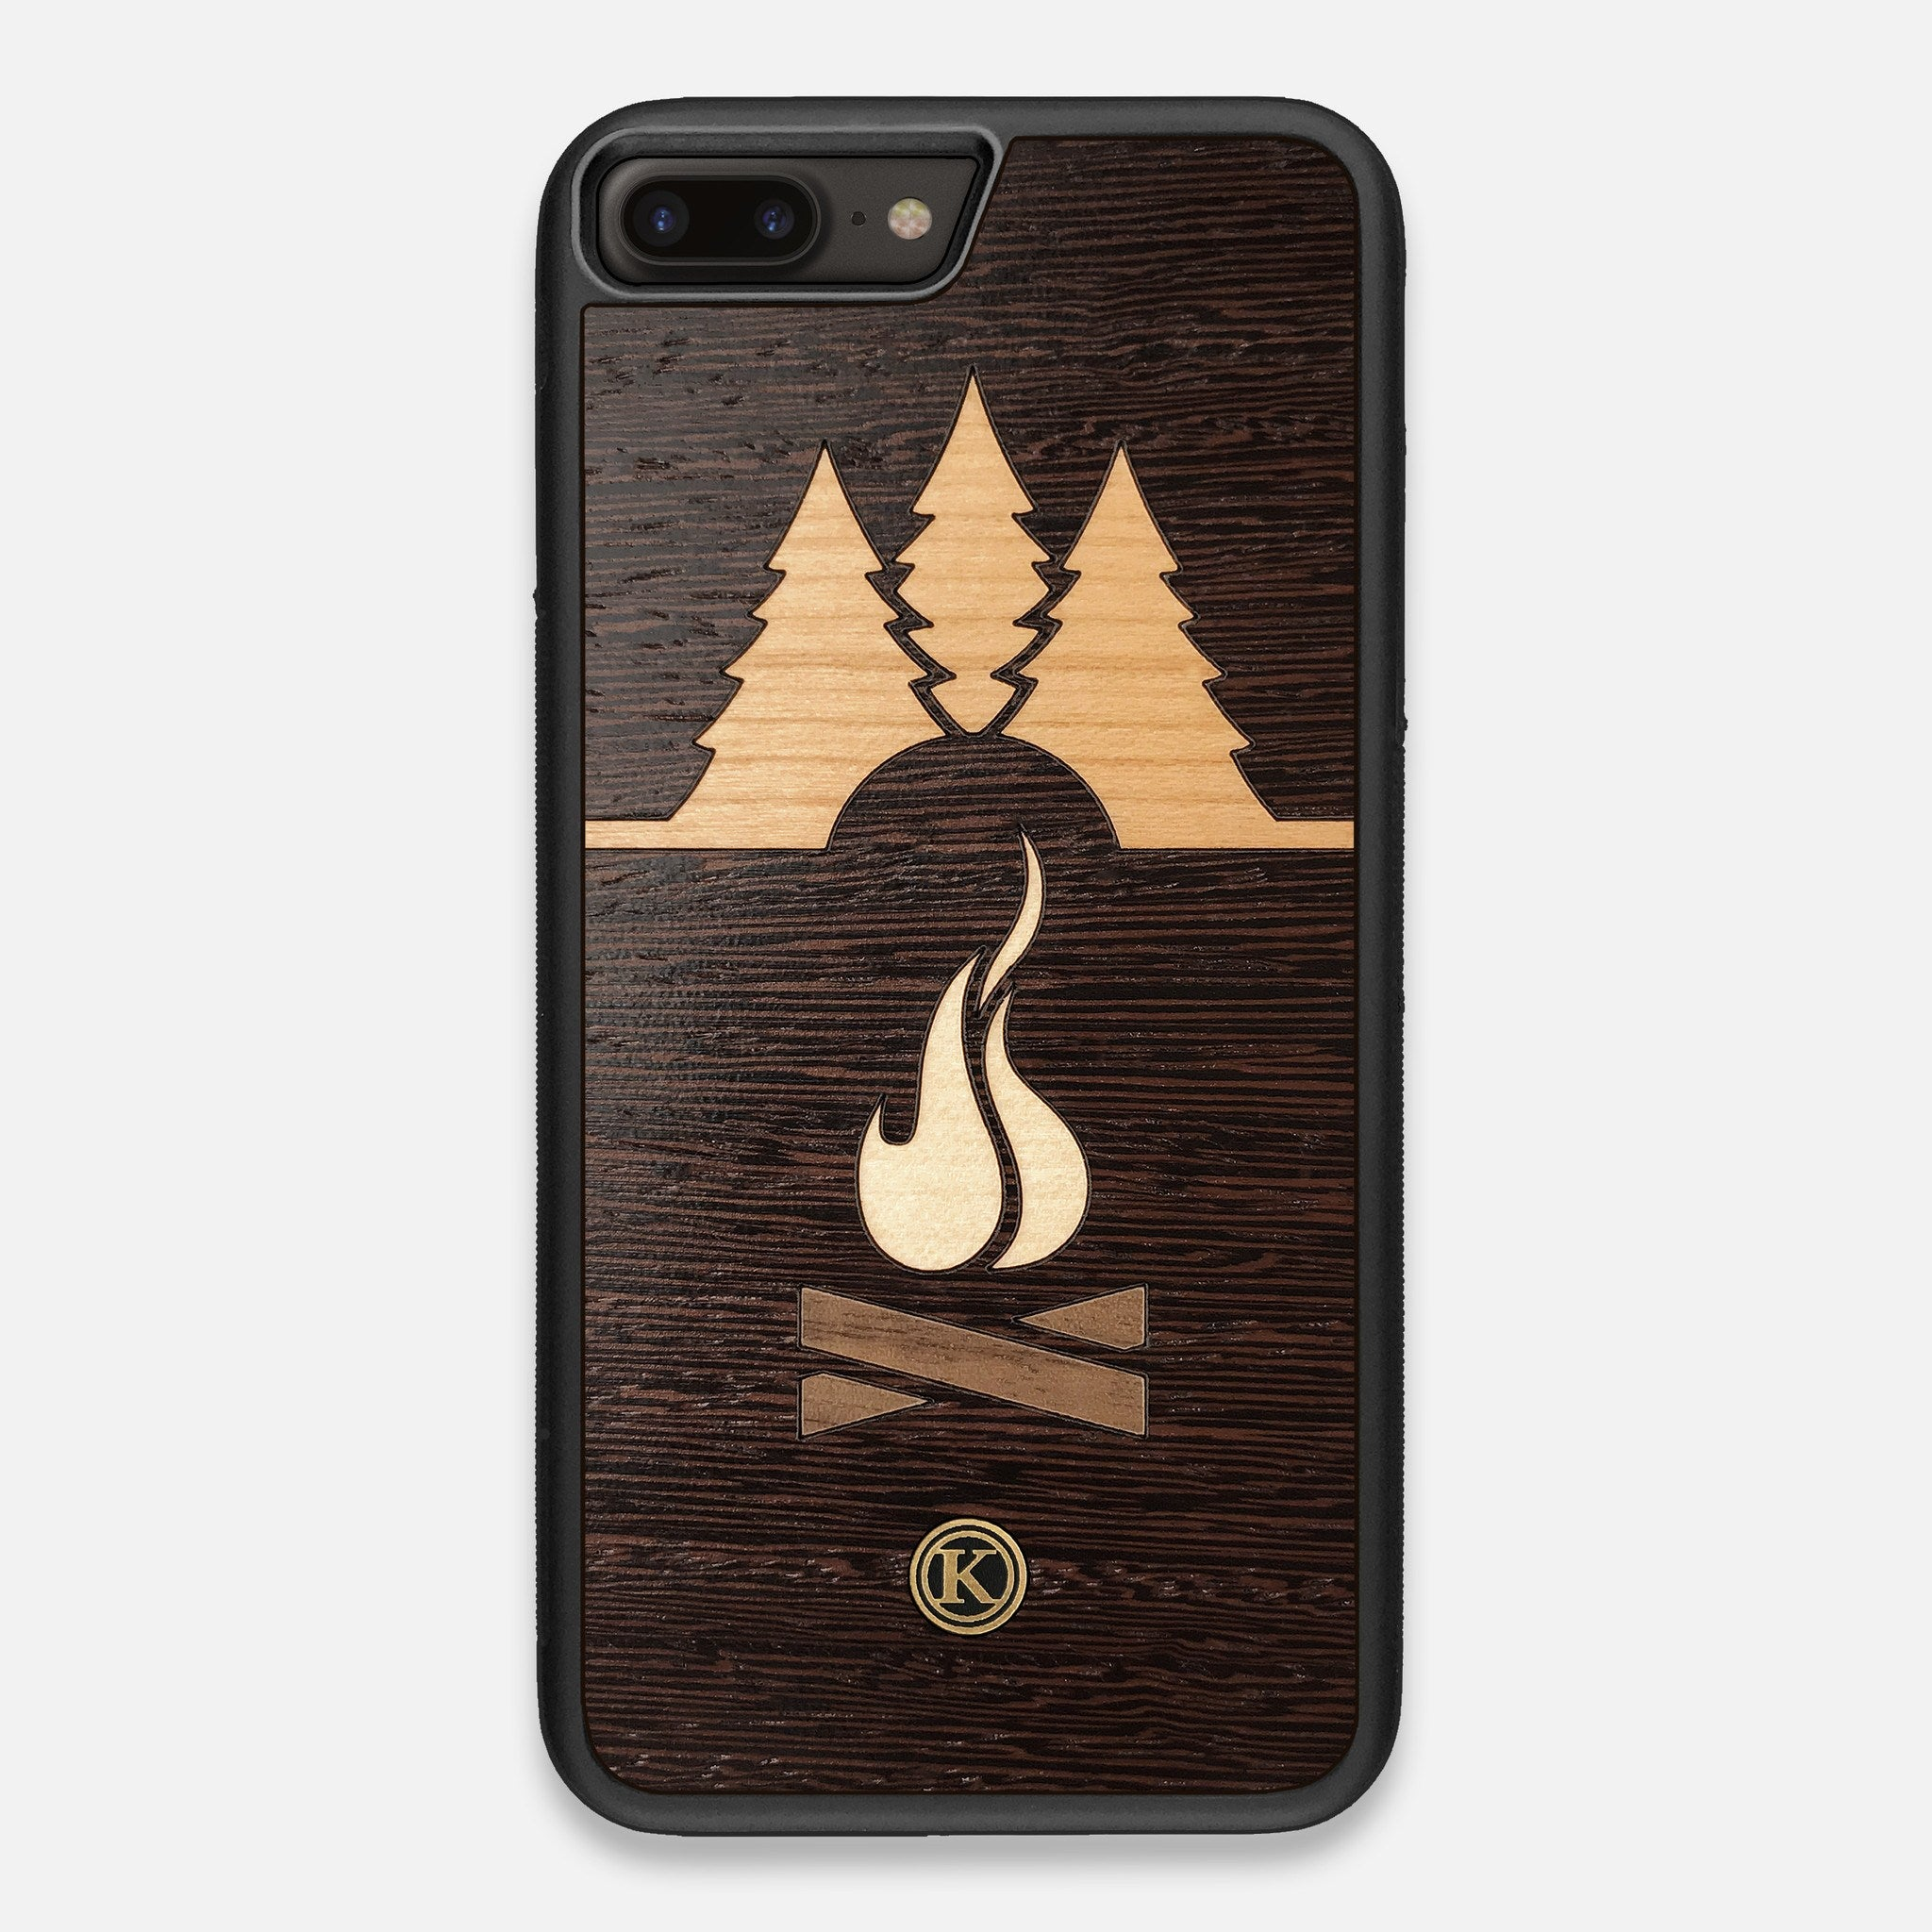 Front view of the Nomad Campsite Wood iPhone 7/8 Plus Case by Keyway Designs